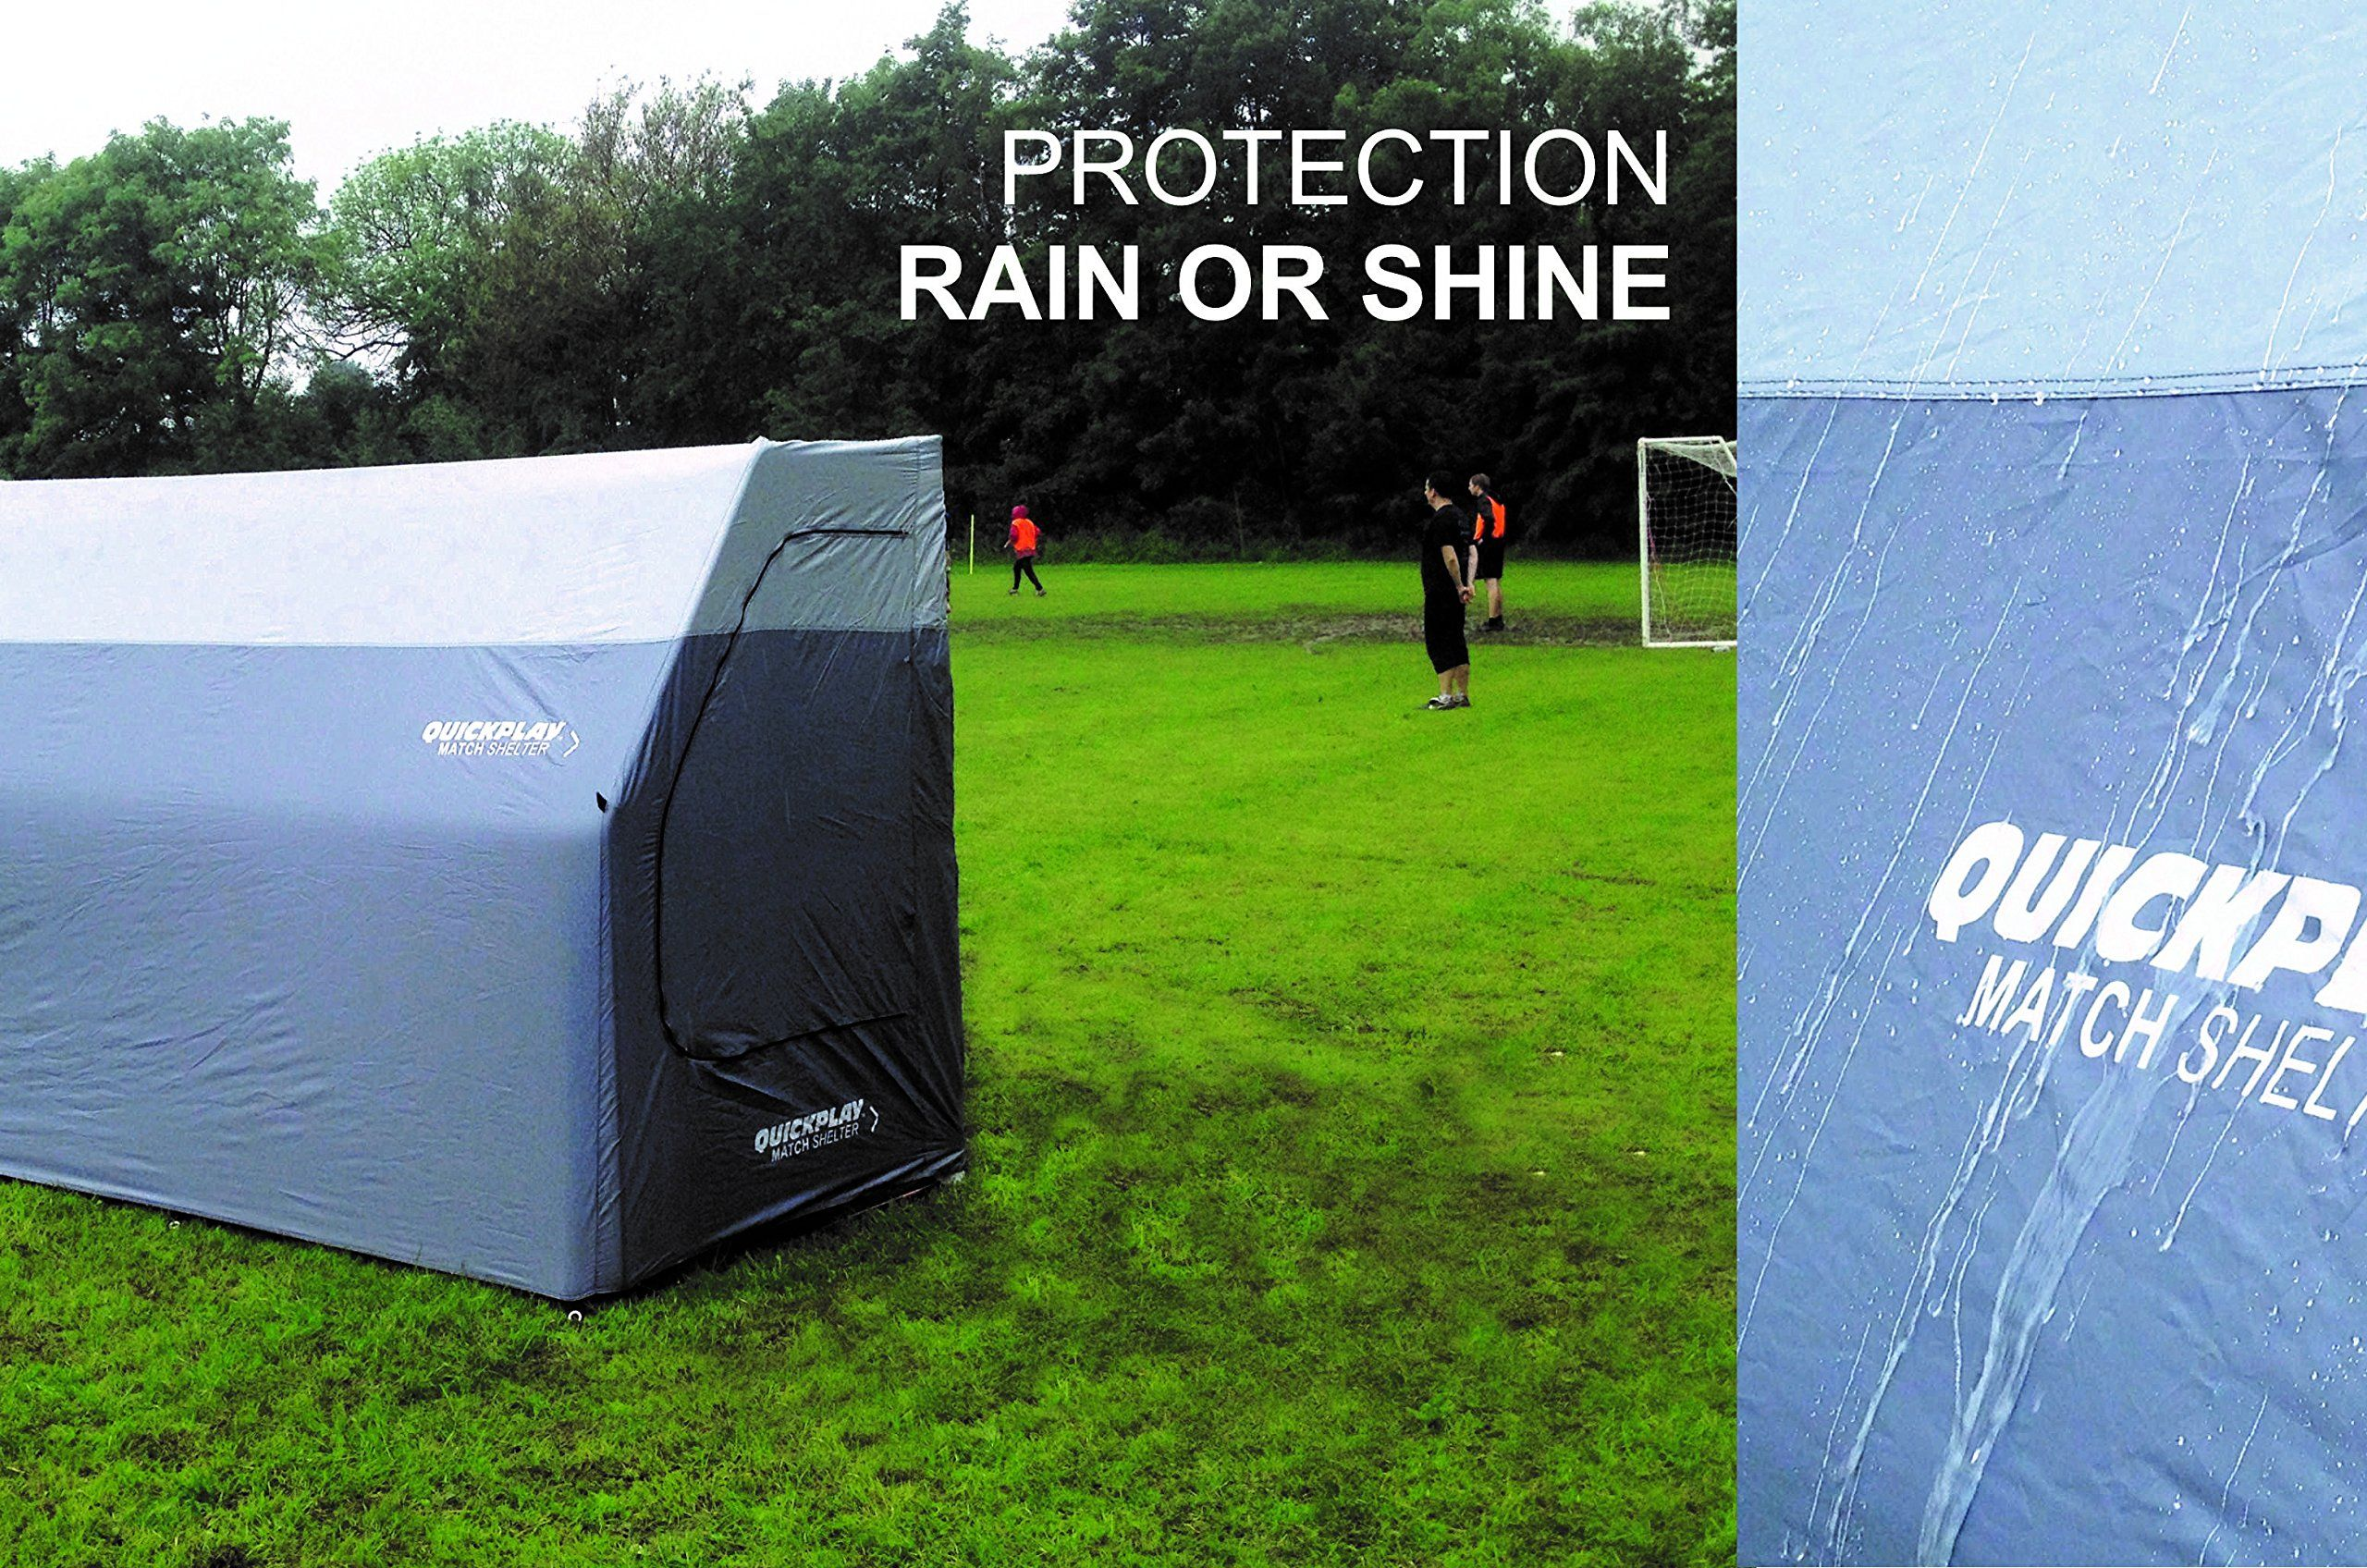 Personal Portable Shelter : Quickplay portable dugout sports shelter easy set up